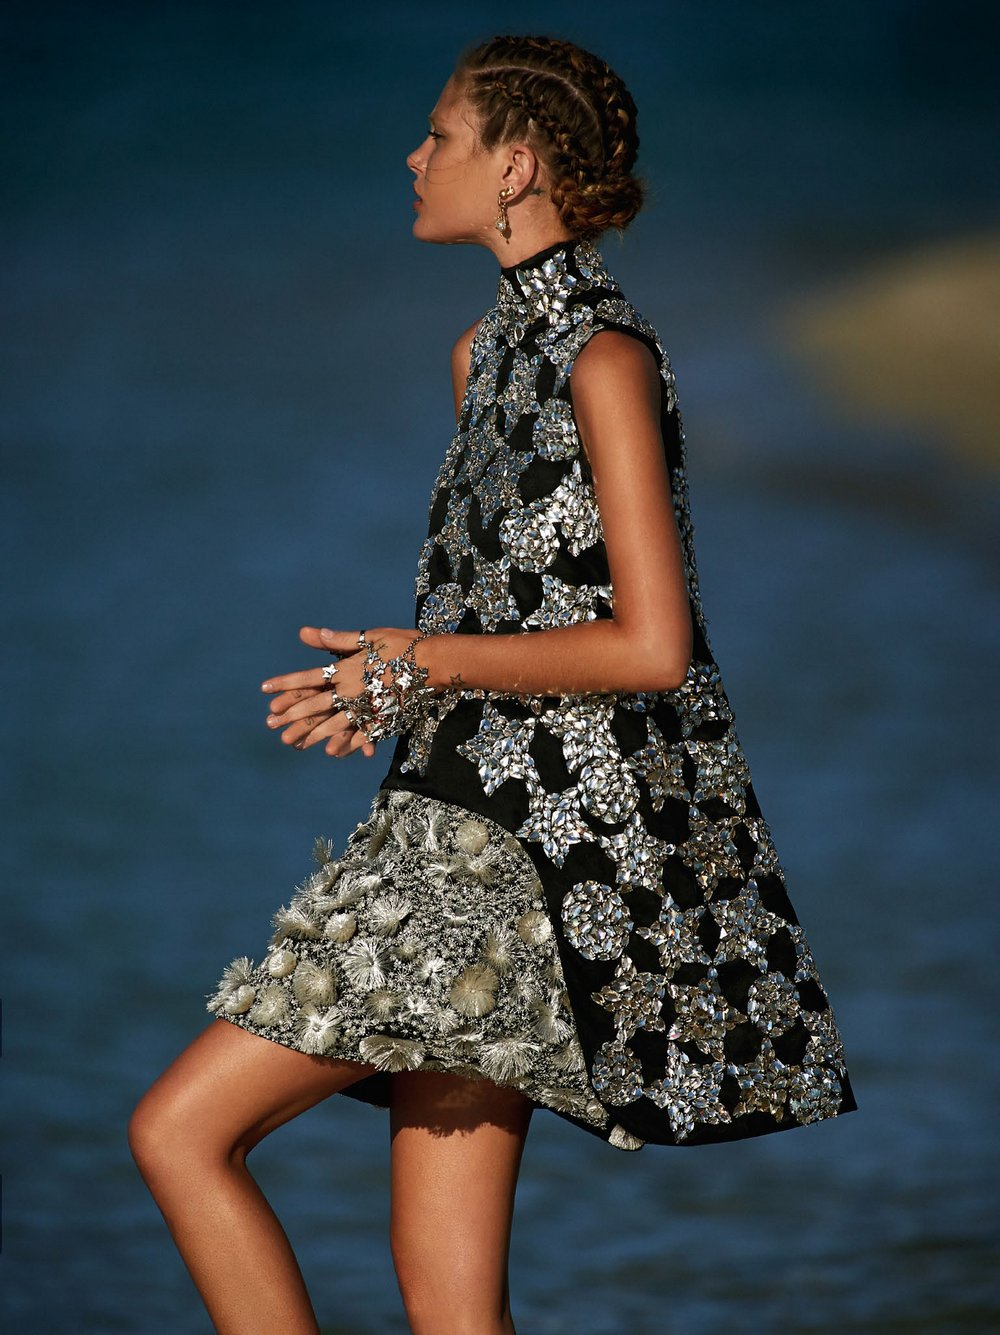 Catherine-McNeil-by-Gilles-Bensimon-for-Vogue-Australia-October-2014-1.jpg